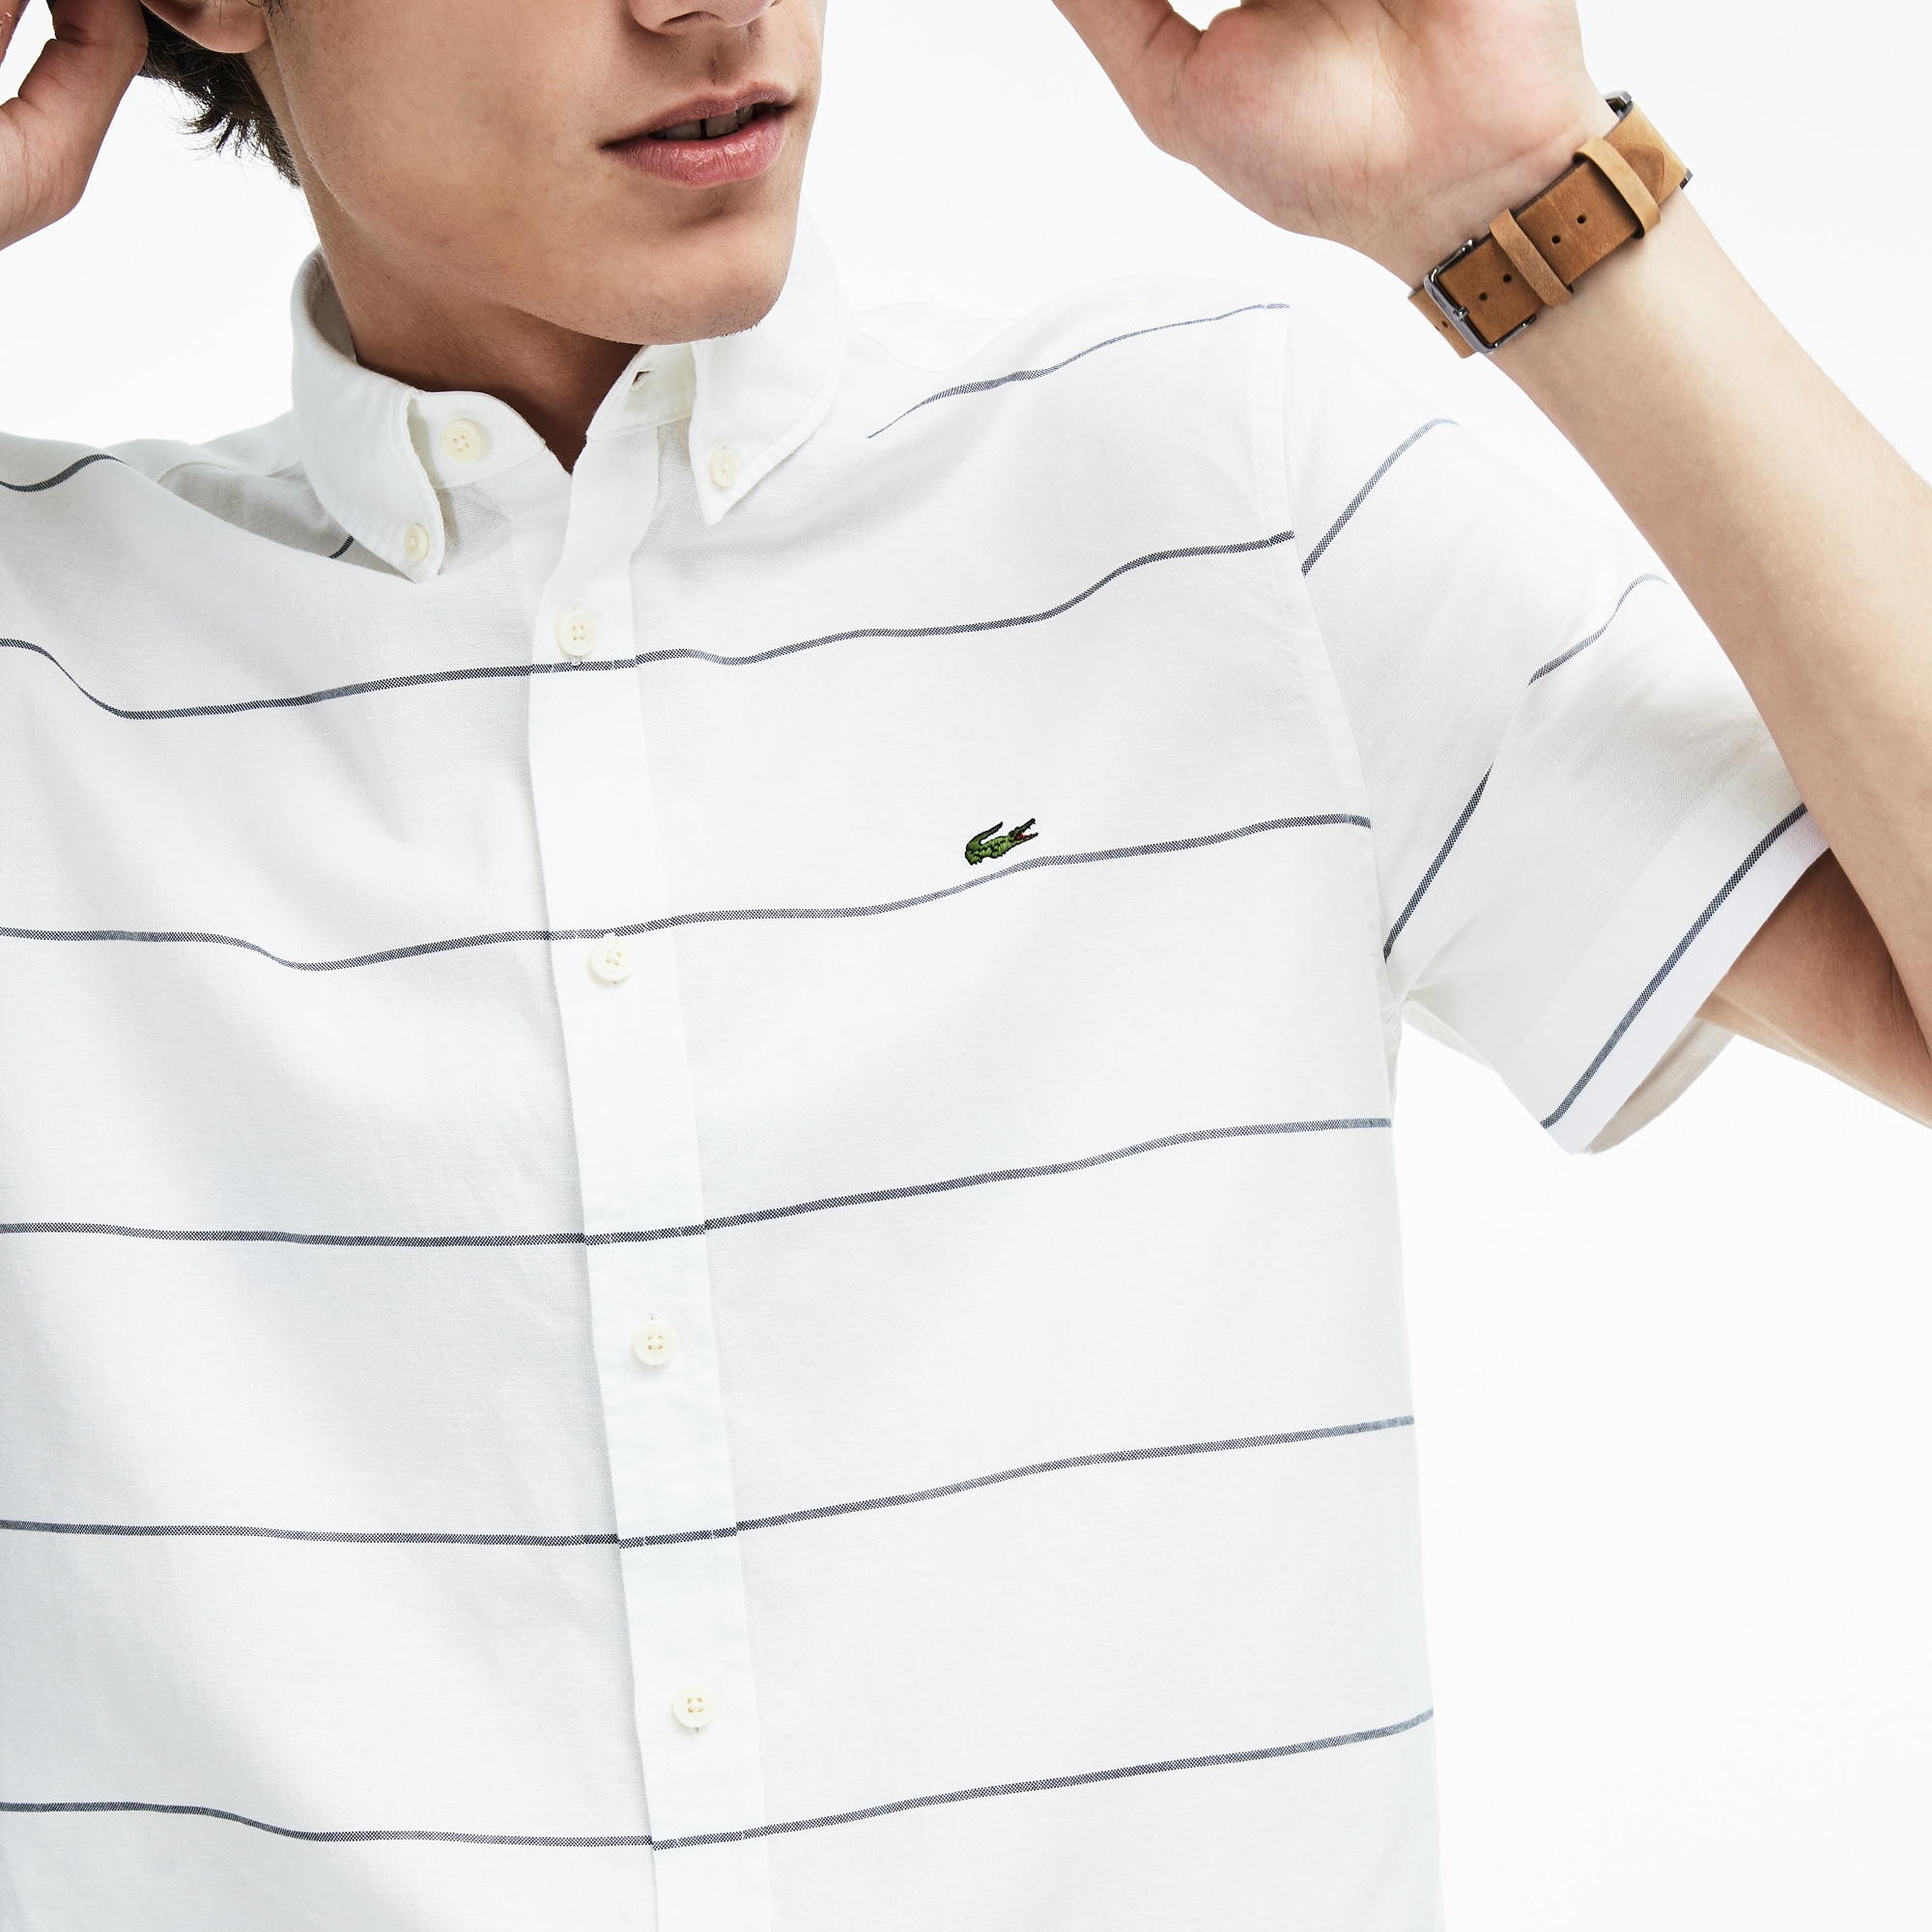 c6368a6ab9 Men's Slim Fit Striped Cotton And Linen Short Sleeves Shirt | LACOSTE